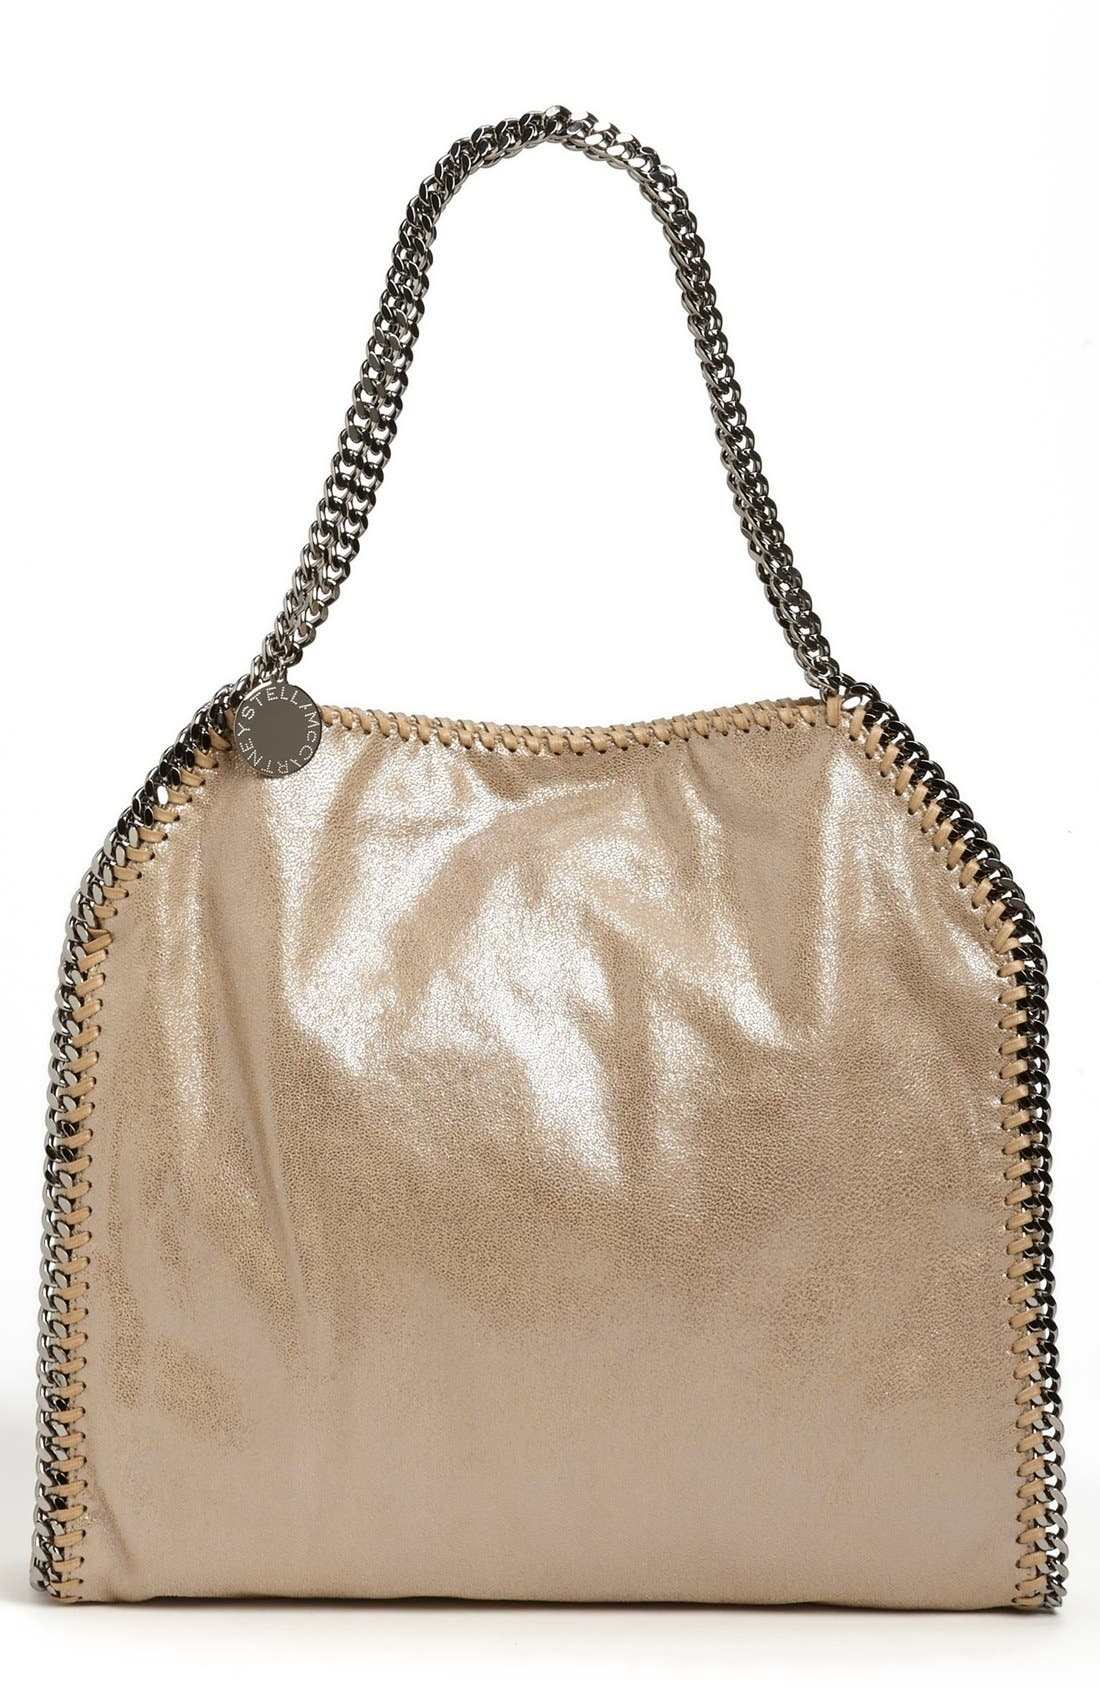 Stella McCartney 'Small Falabella' Faux Leather Tote